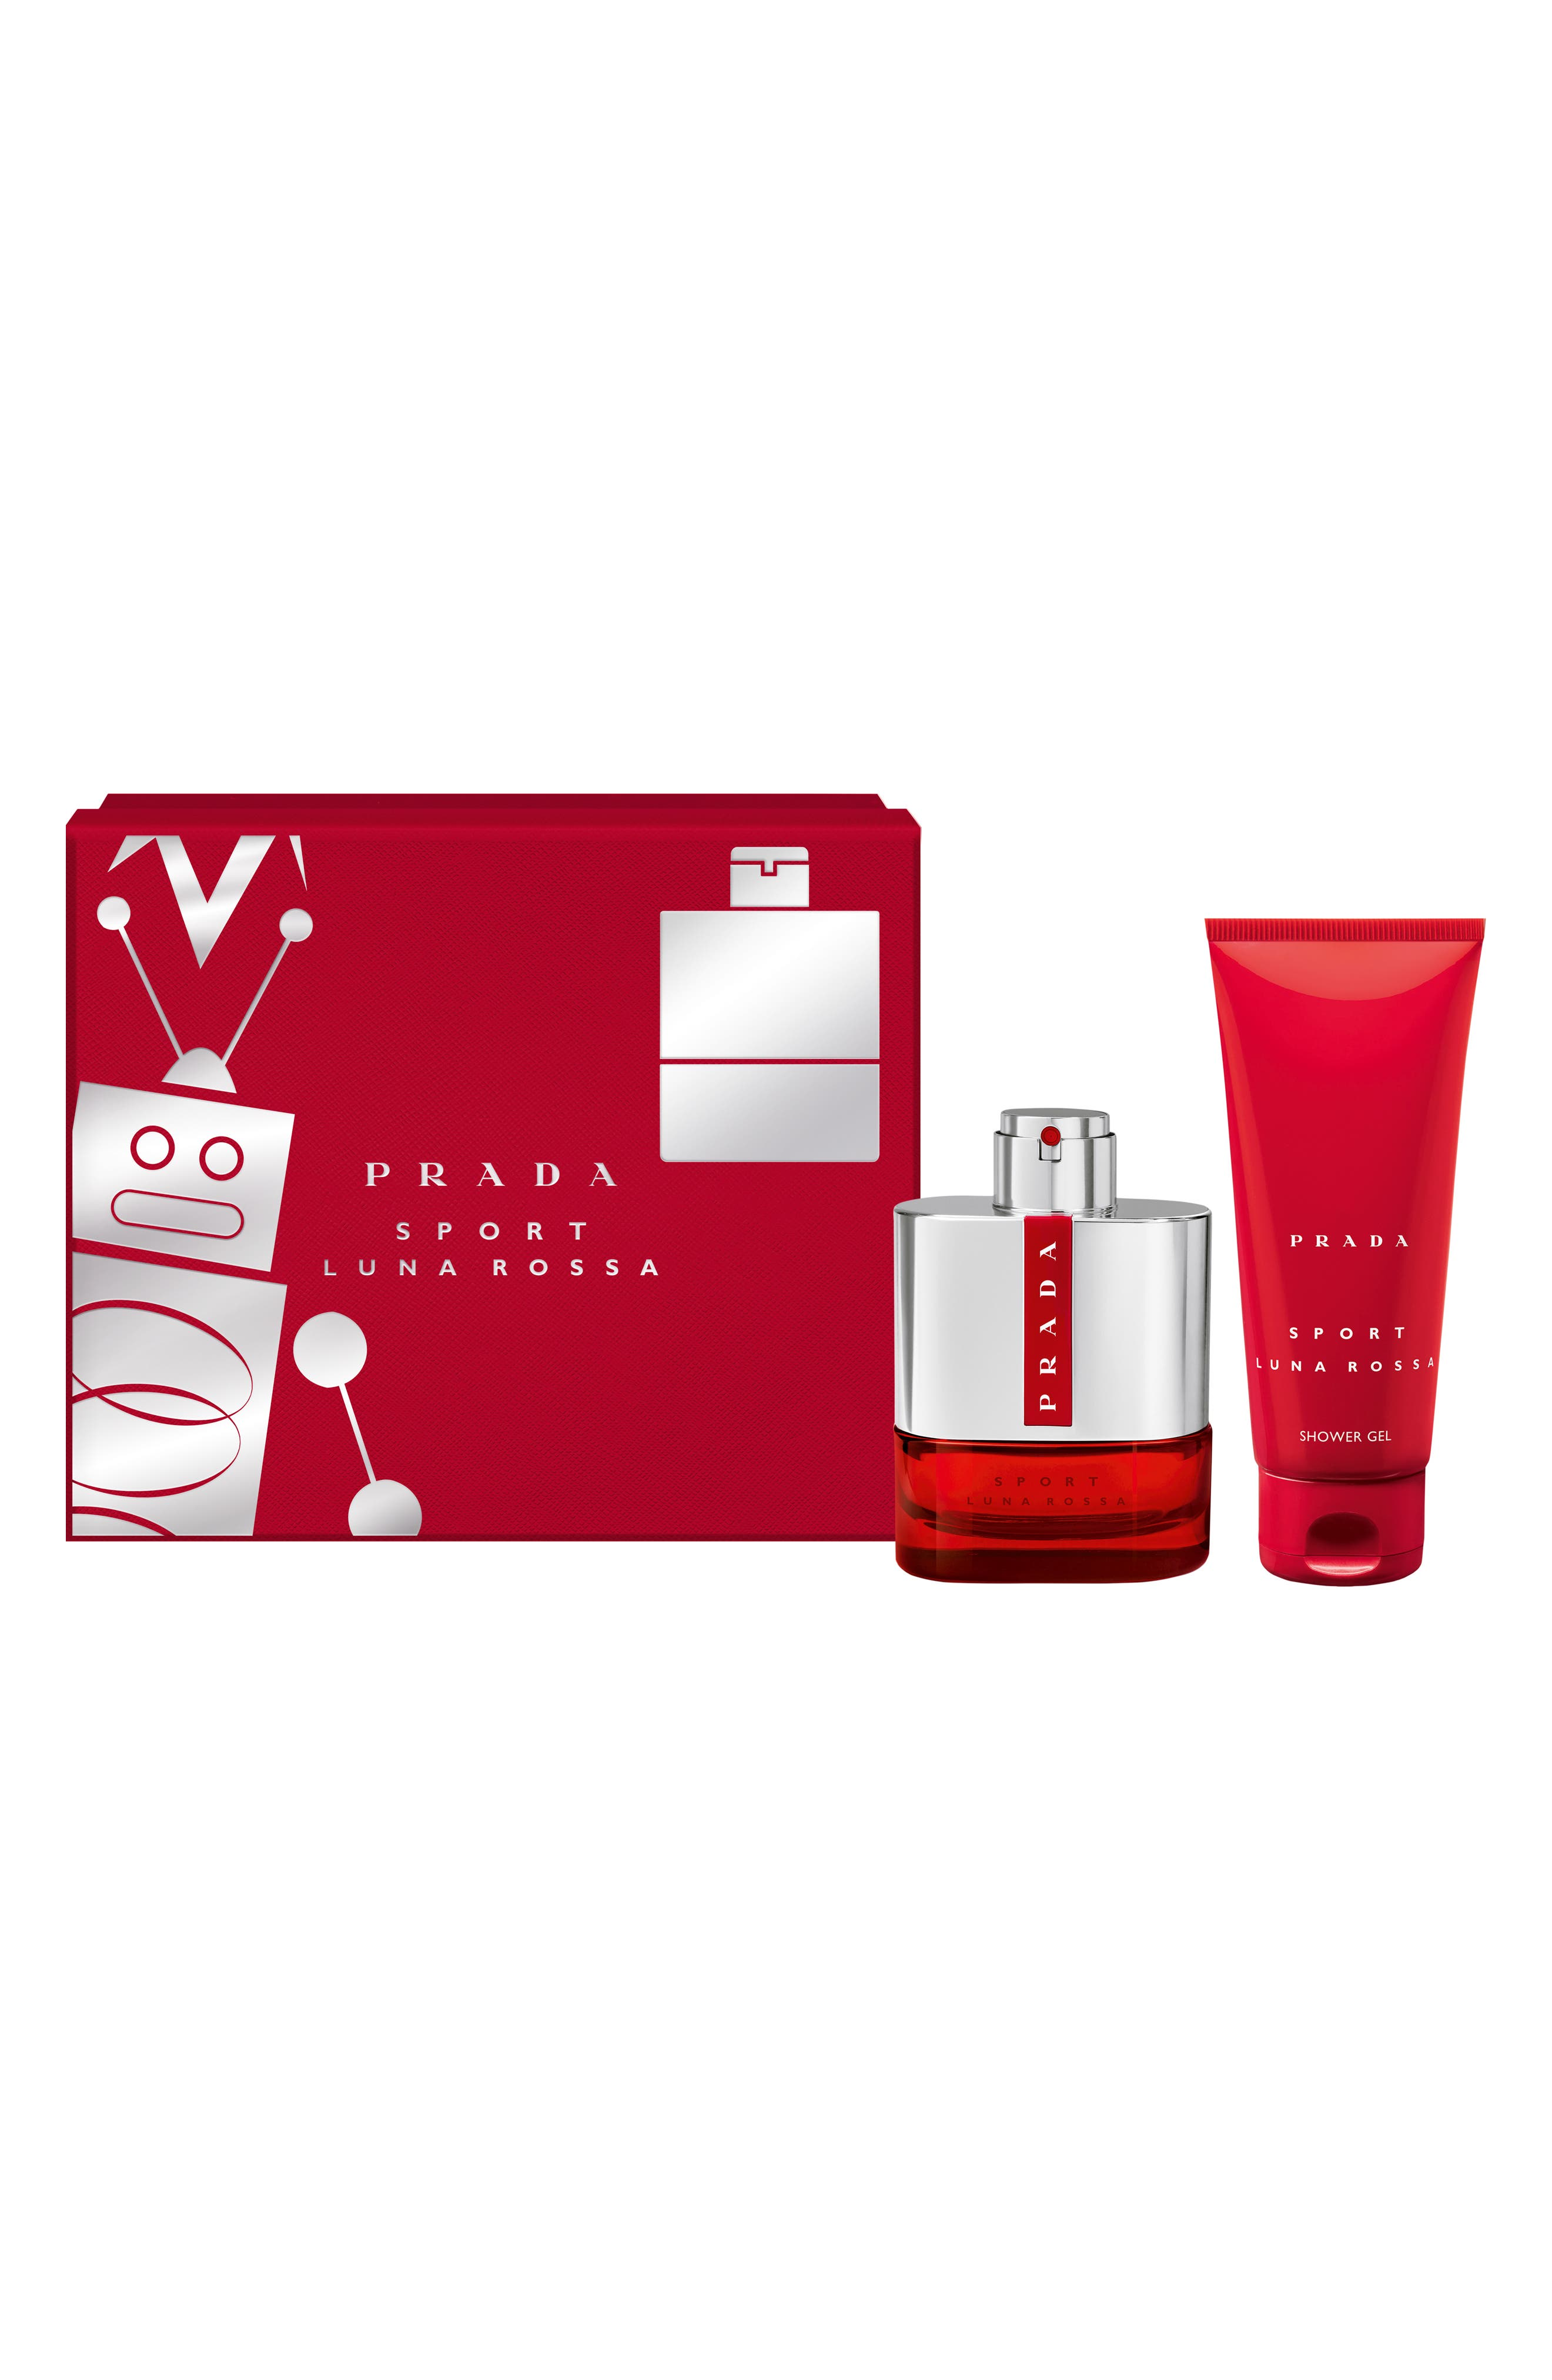 Prada Luna Rossa Sport Set ($104 Value)